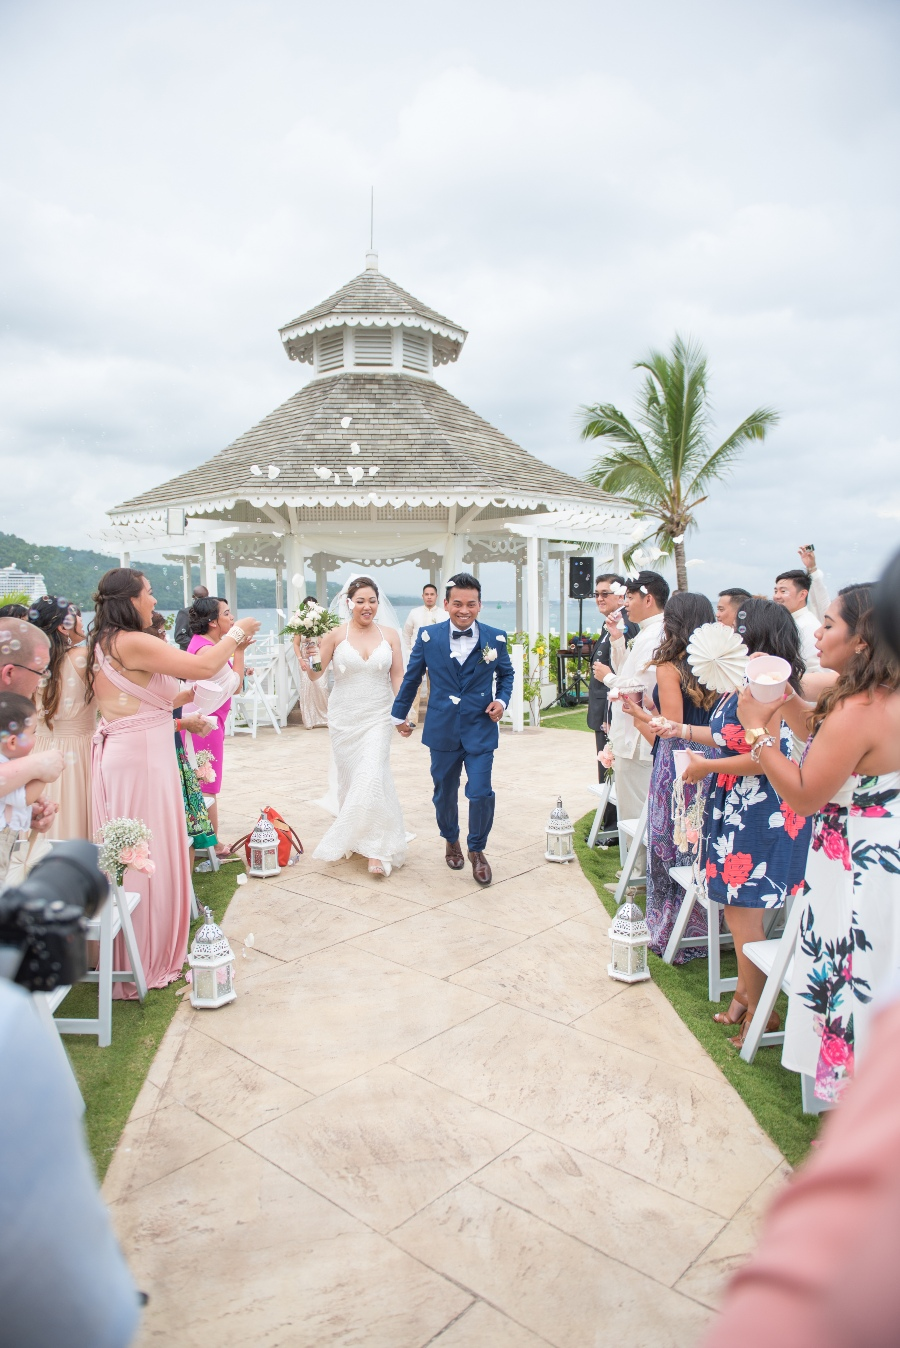 getting married in Jamaica Moon Palace